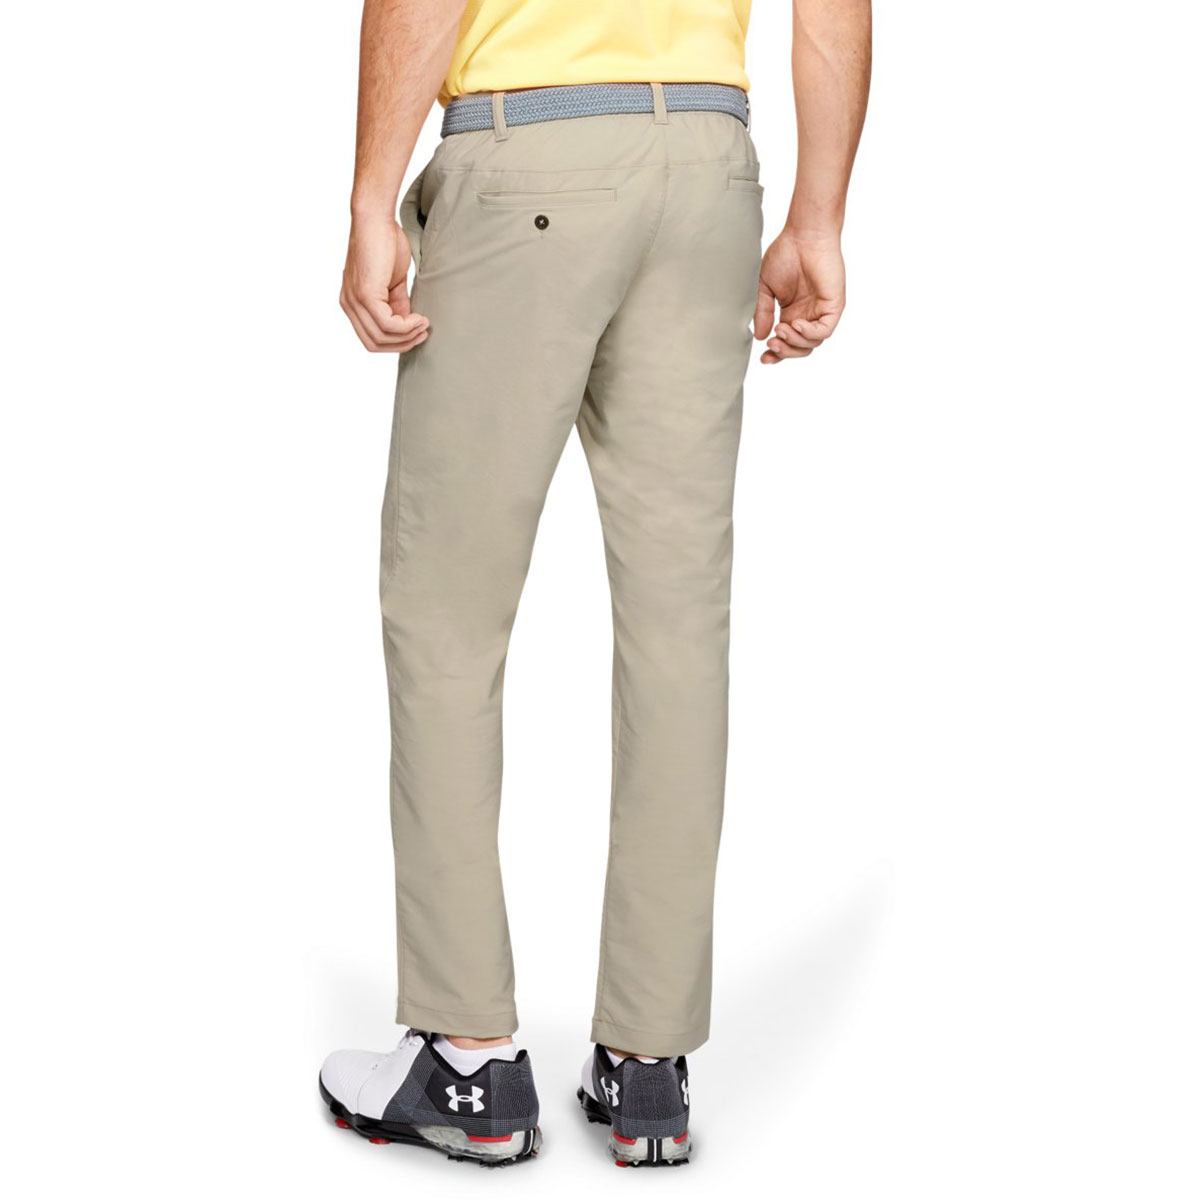 Under-Armour-Mens-2019-EU-Performance-Taper-Soft-Stretch-Golf-Trousers thumbnail 7